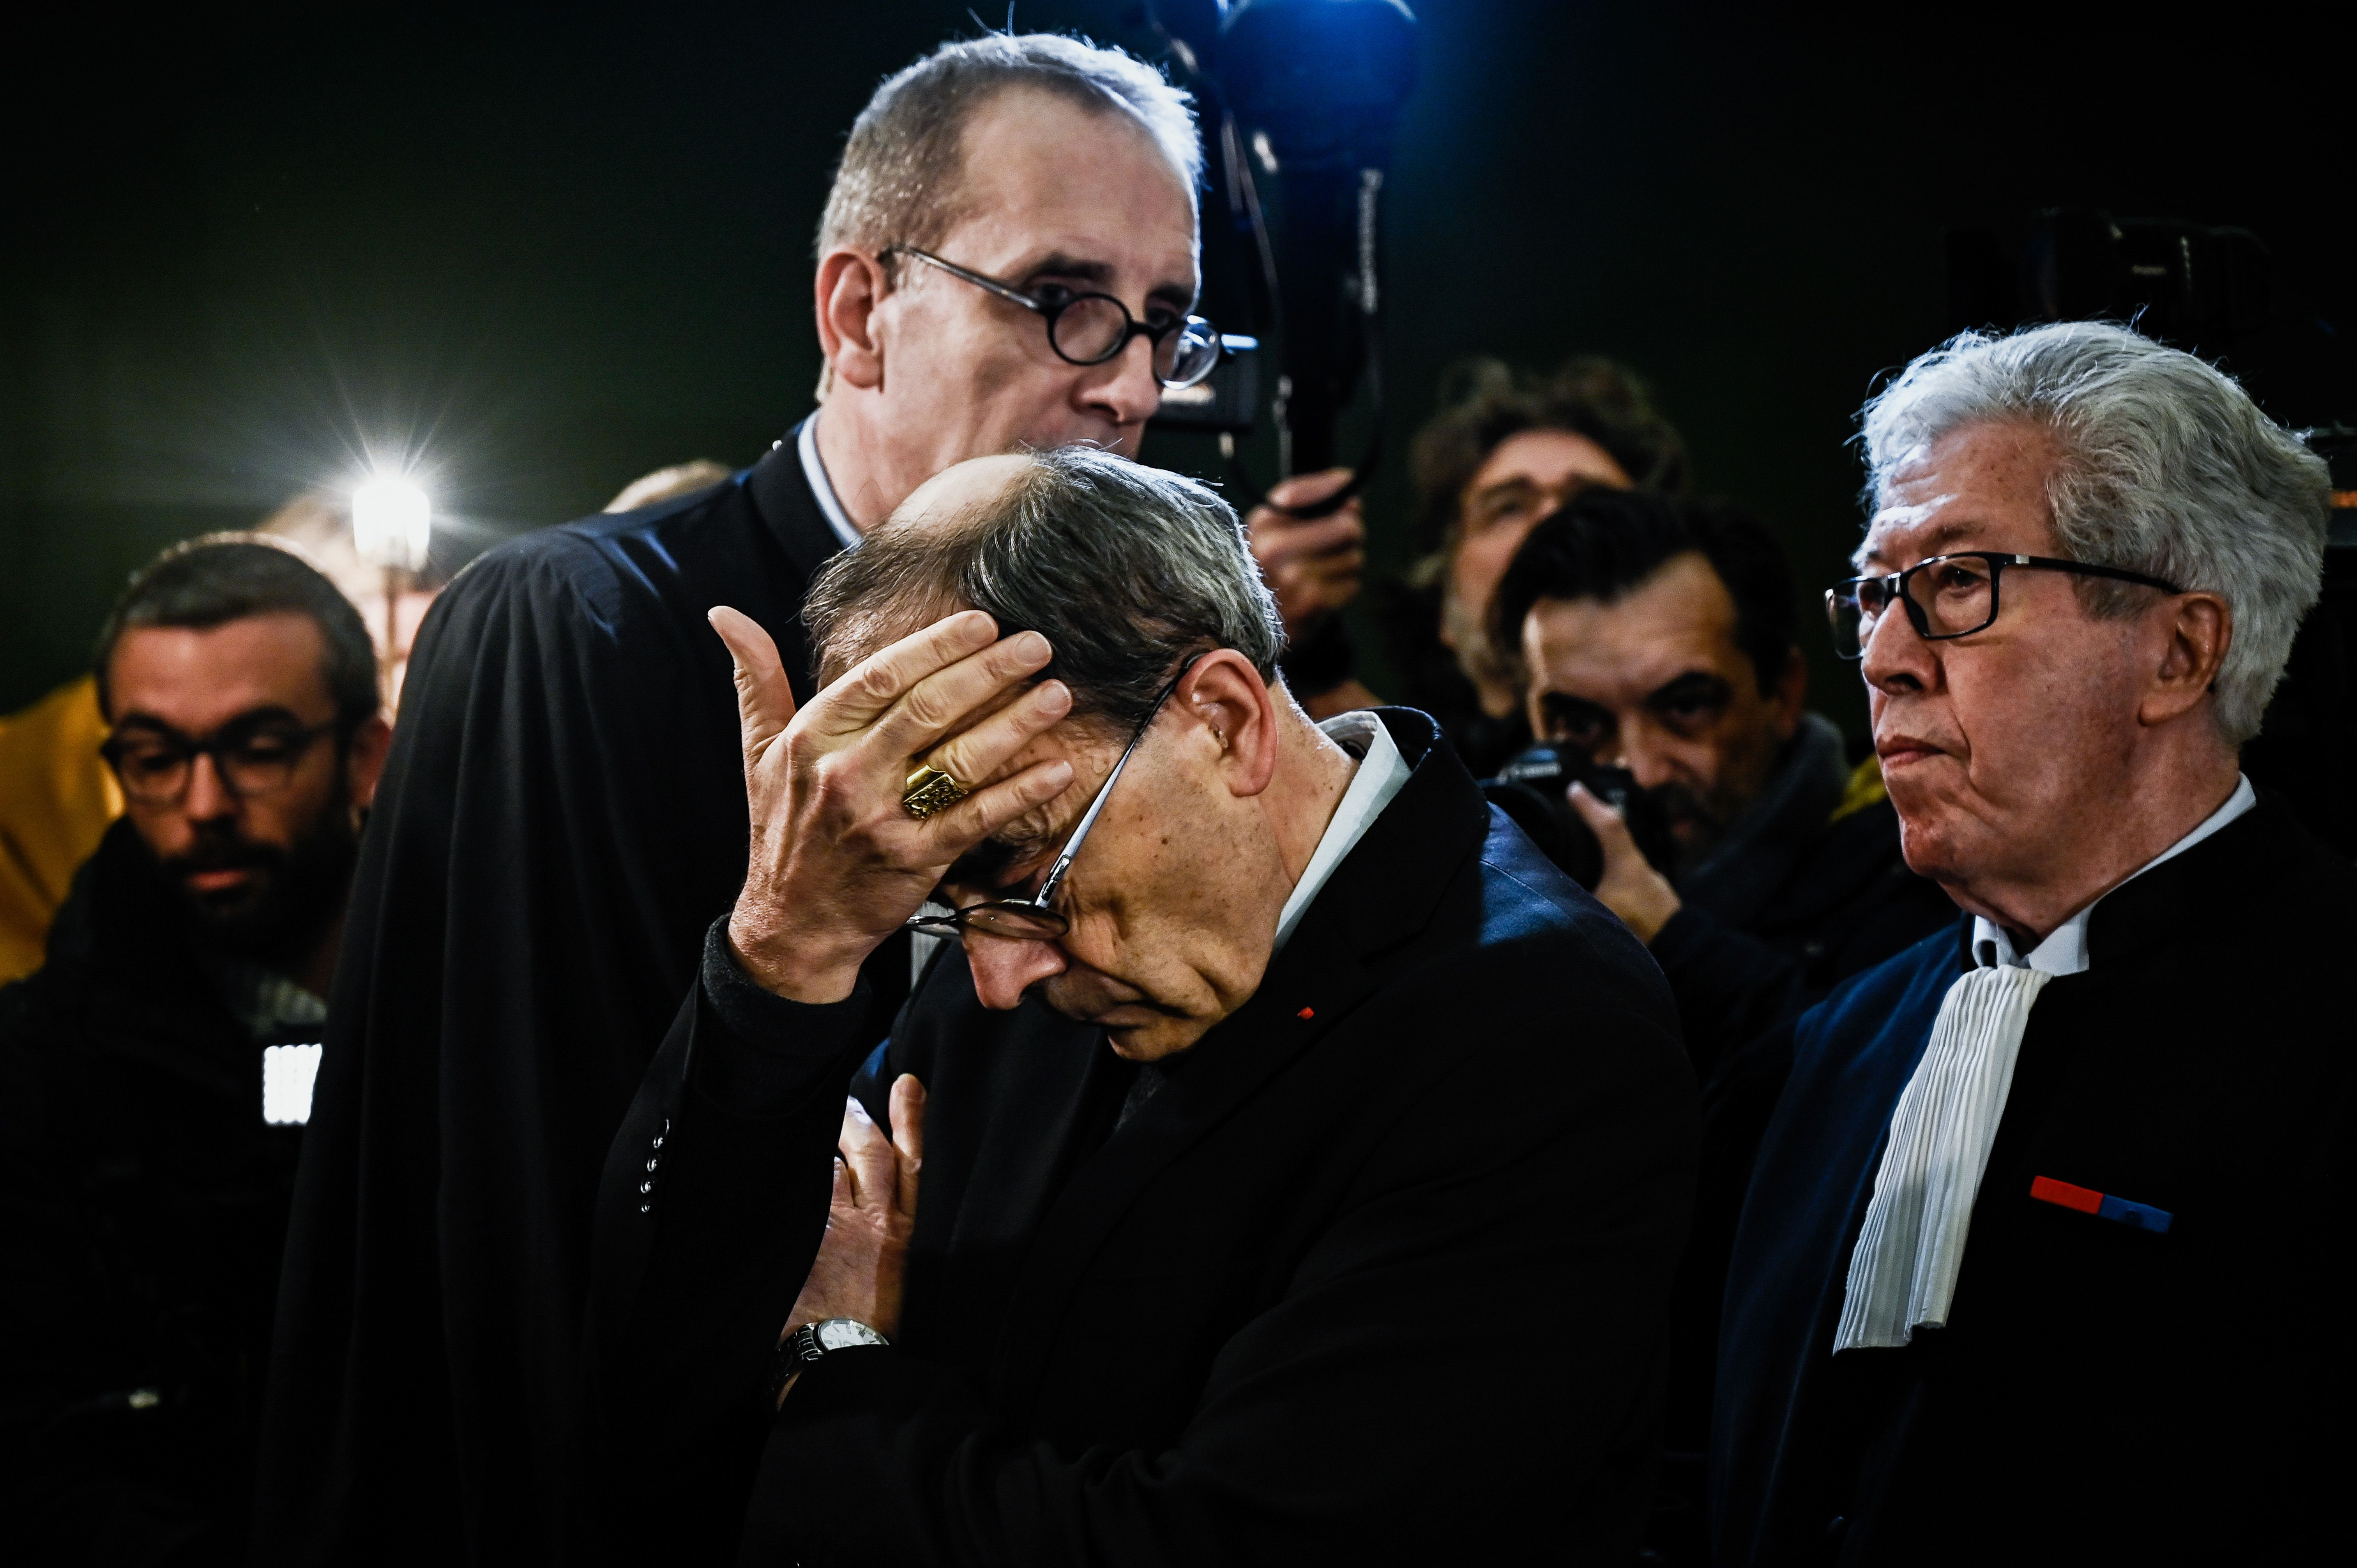 Lyon archbishop, cardinal Philippe Barbarin gestures as he arrives in Lyon court to attend his trial, on January 7, 2019. (JEFF PACHOUD/AFP/Getty Images)